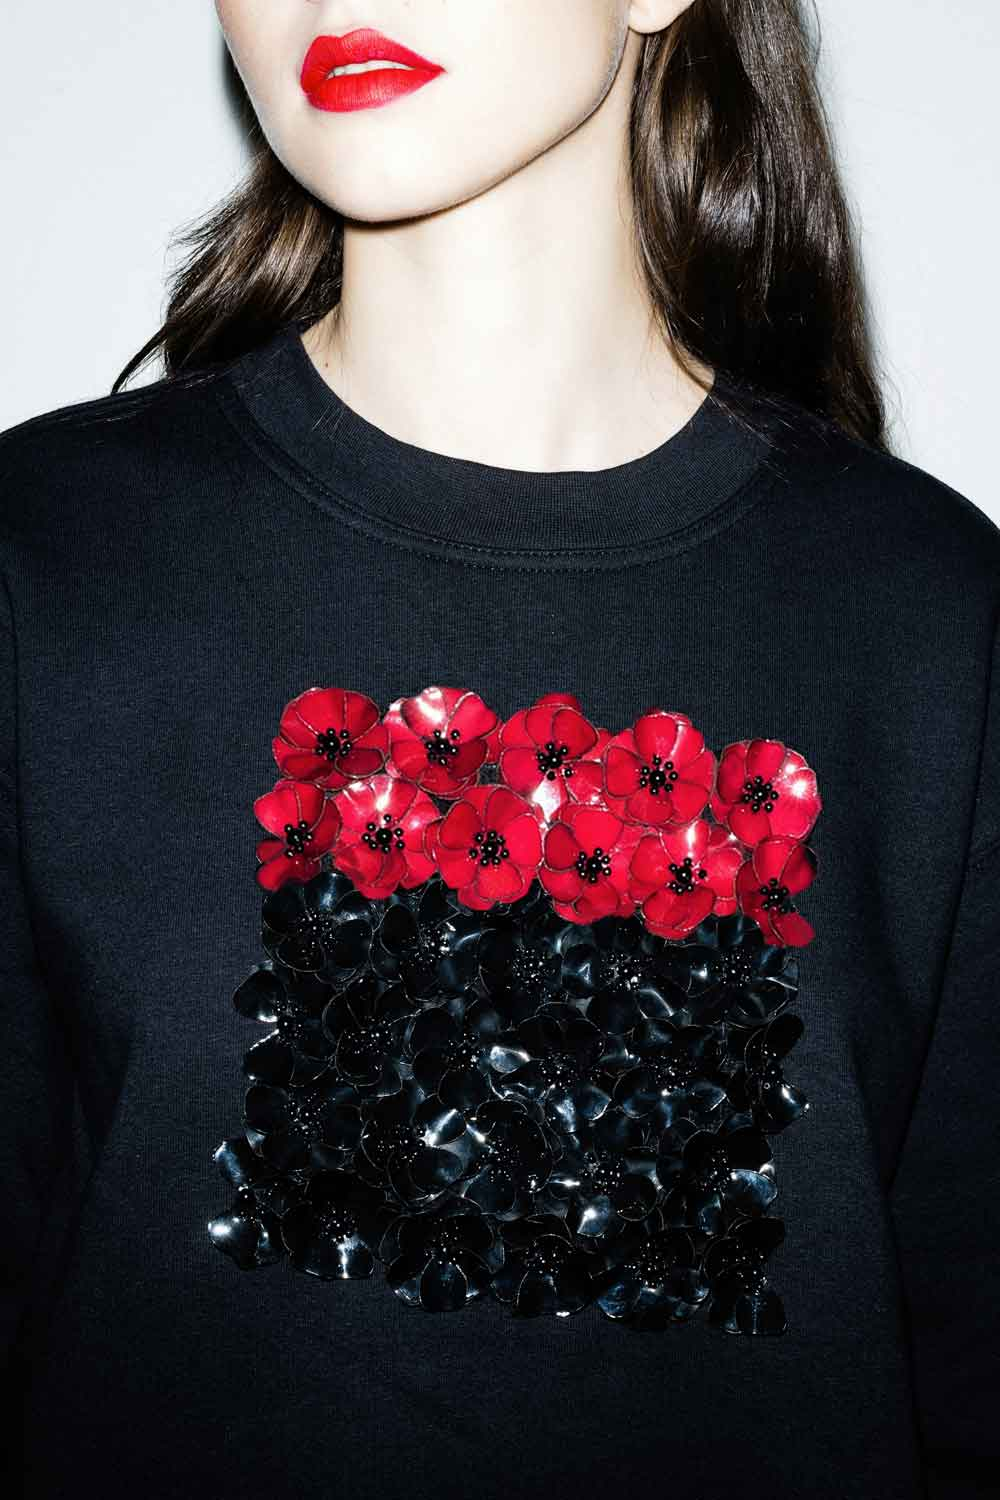 fflag-sweatshirt-poppies-ornement-fleurs-sequins-bicolore4